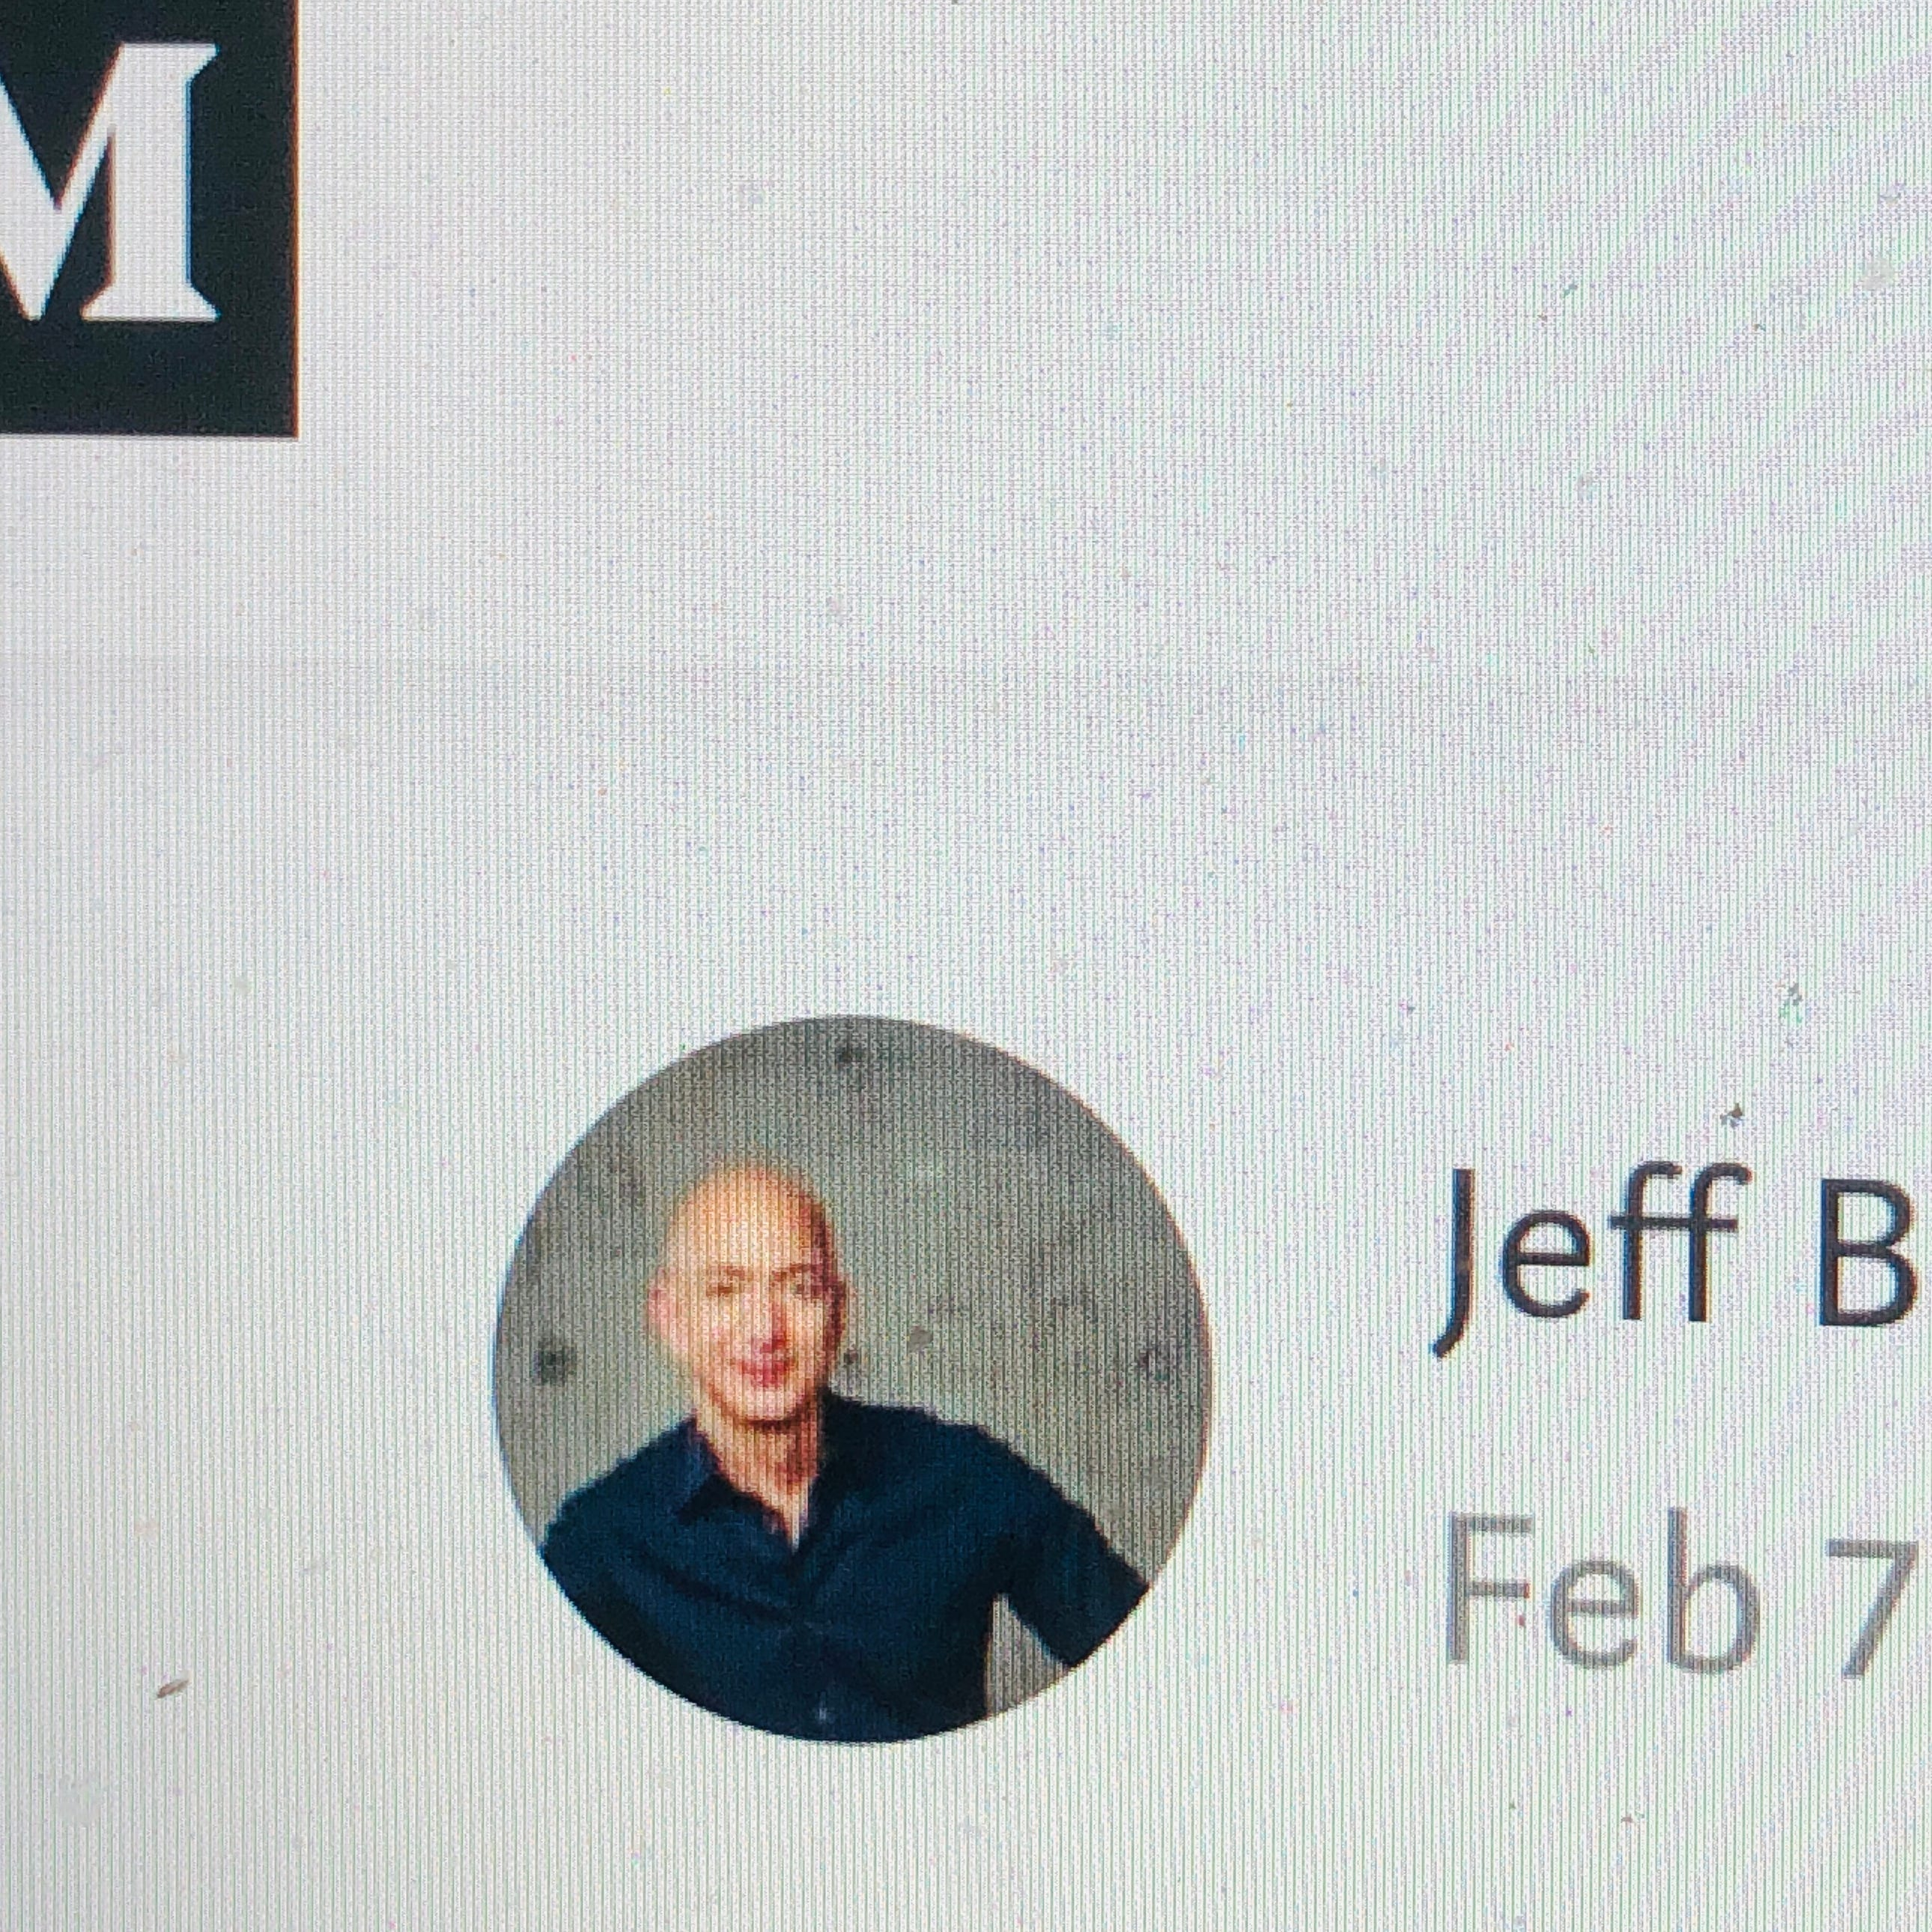 Jeff Bezos on Medium